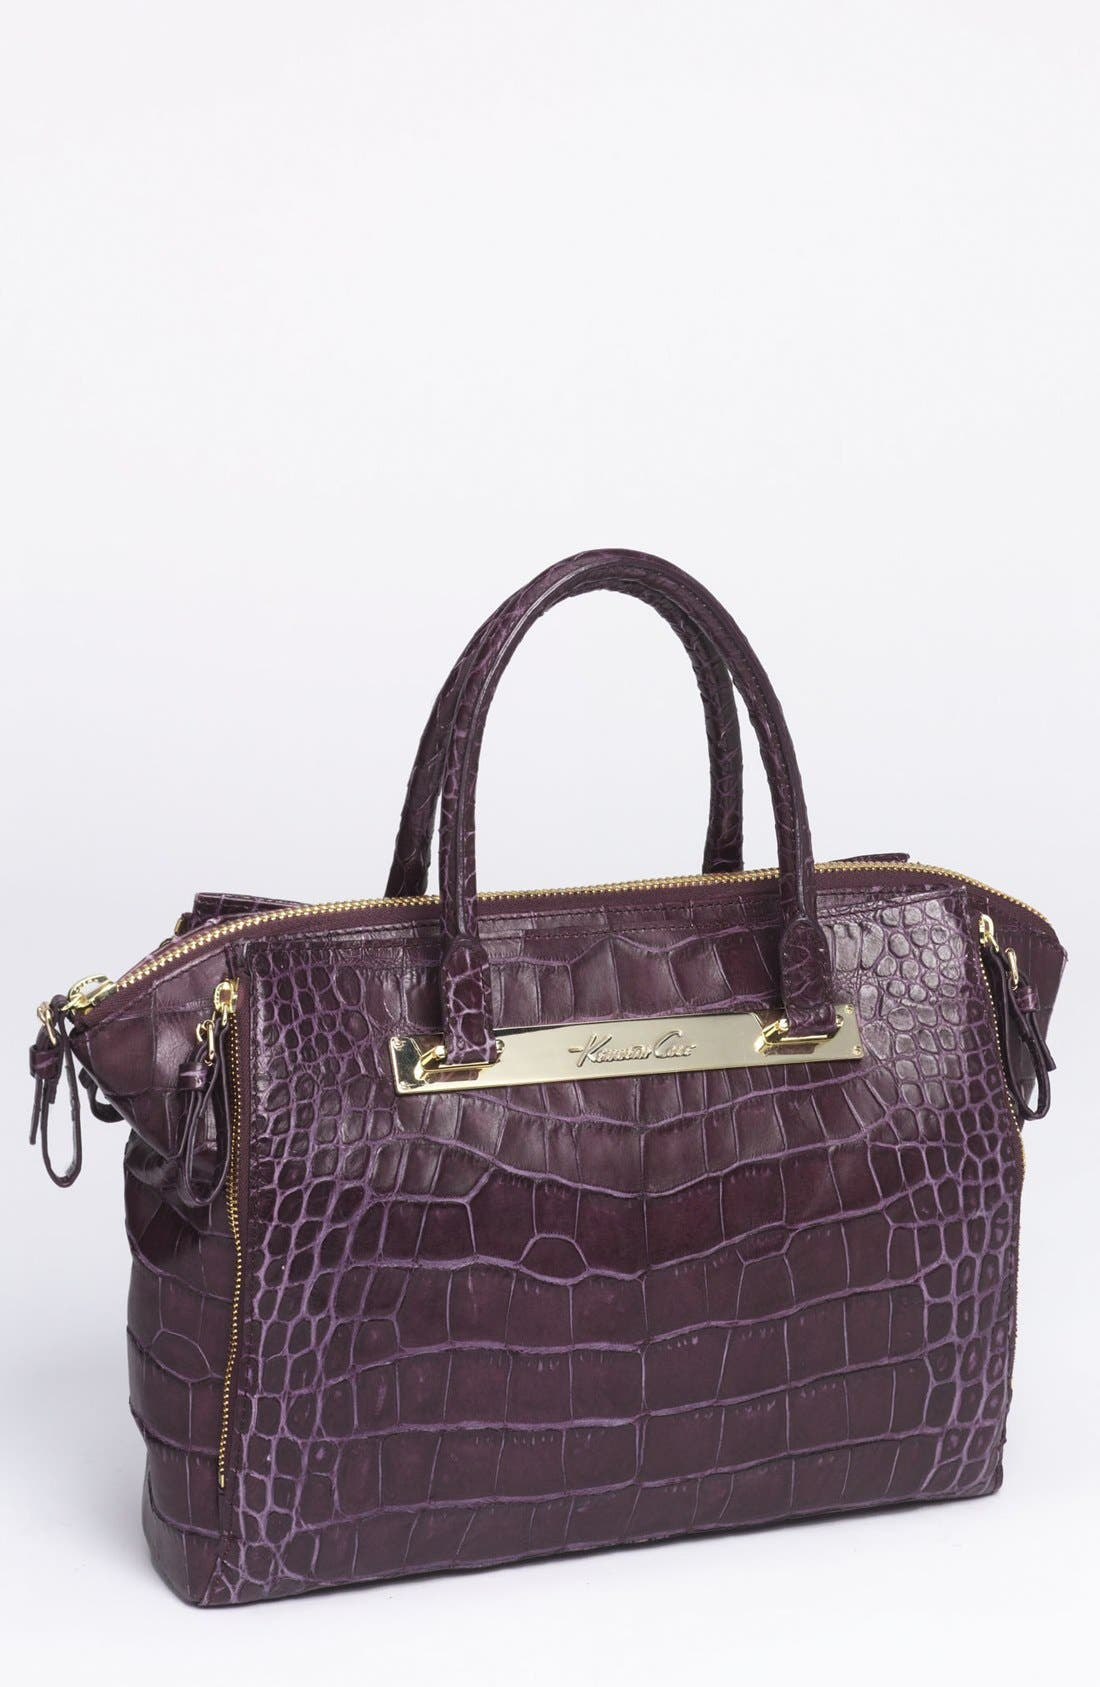 Main Image - Kenneth Cole New York 'Raise The Bar' Satchel, Medium